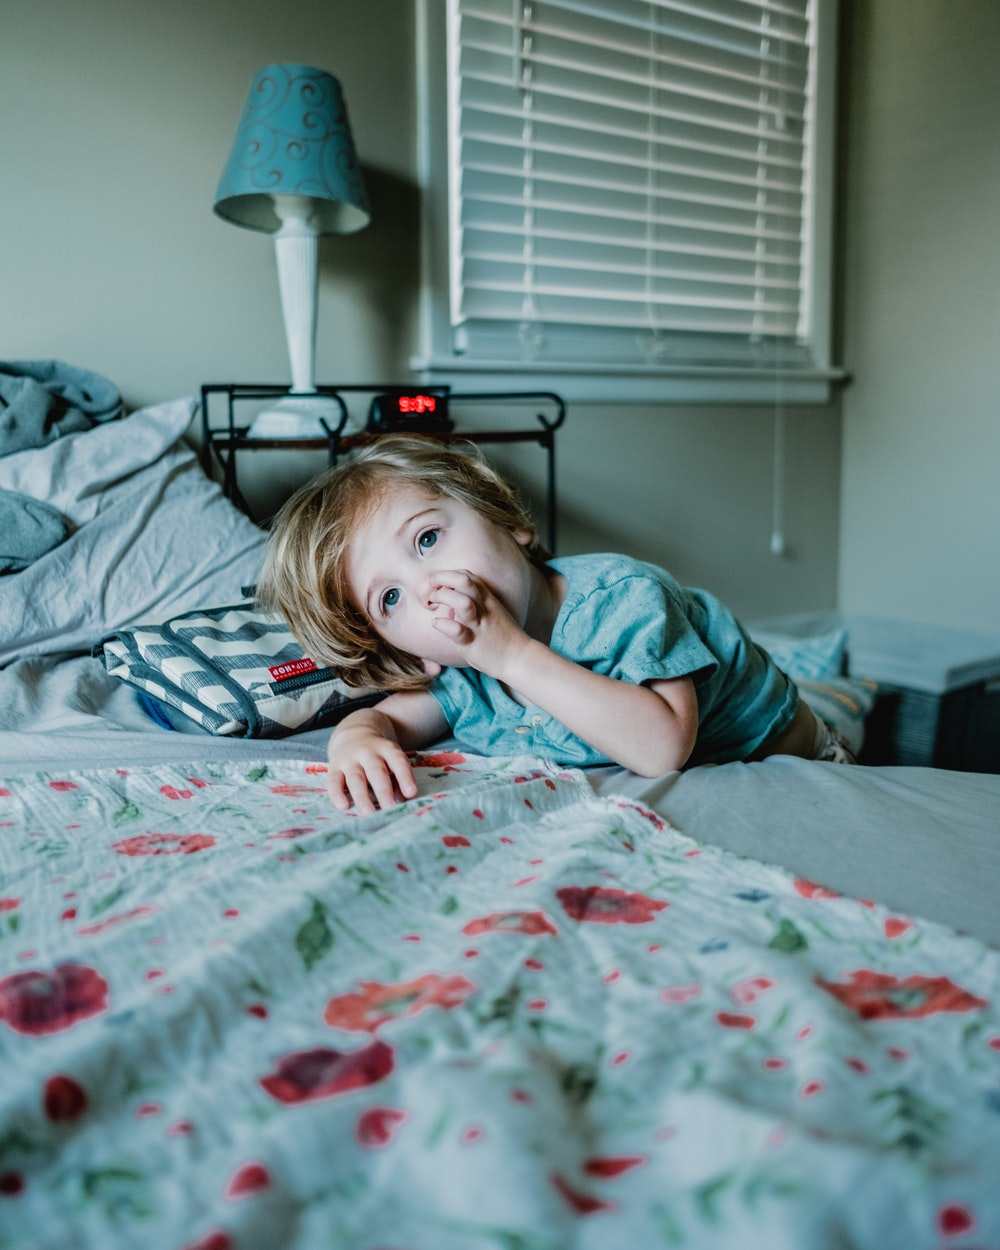 boy lying on bed while raising left hand near his mouth